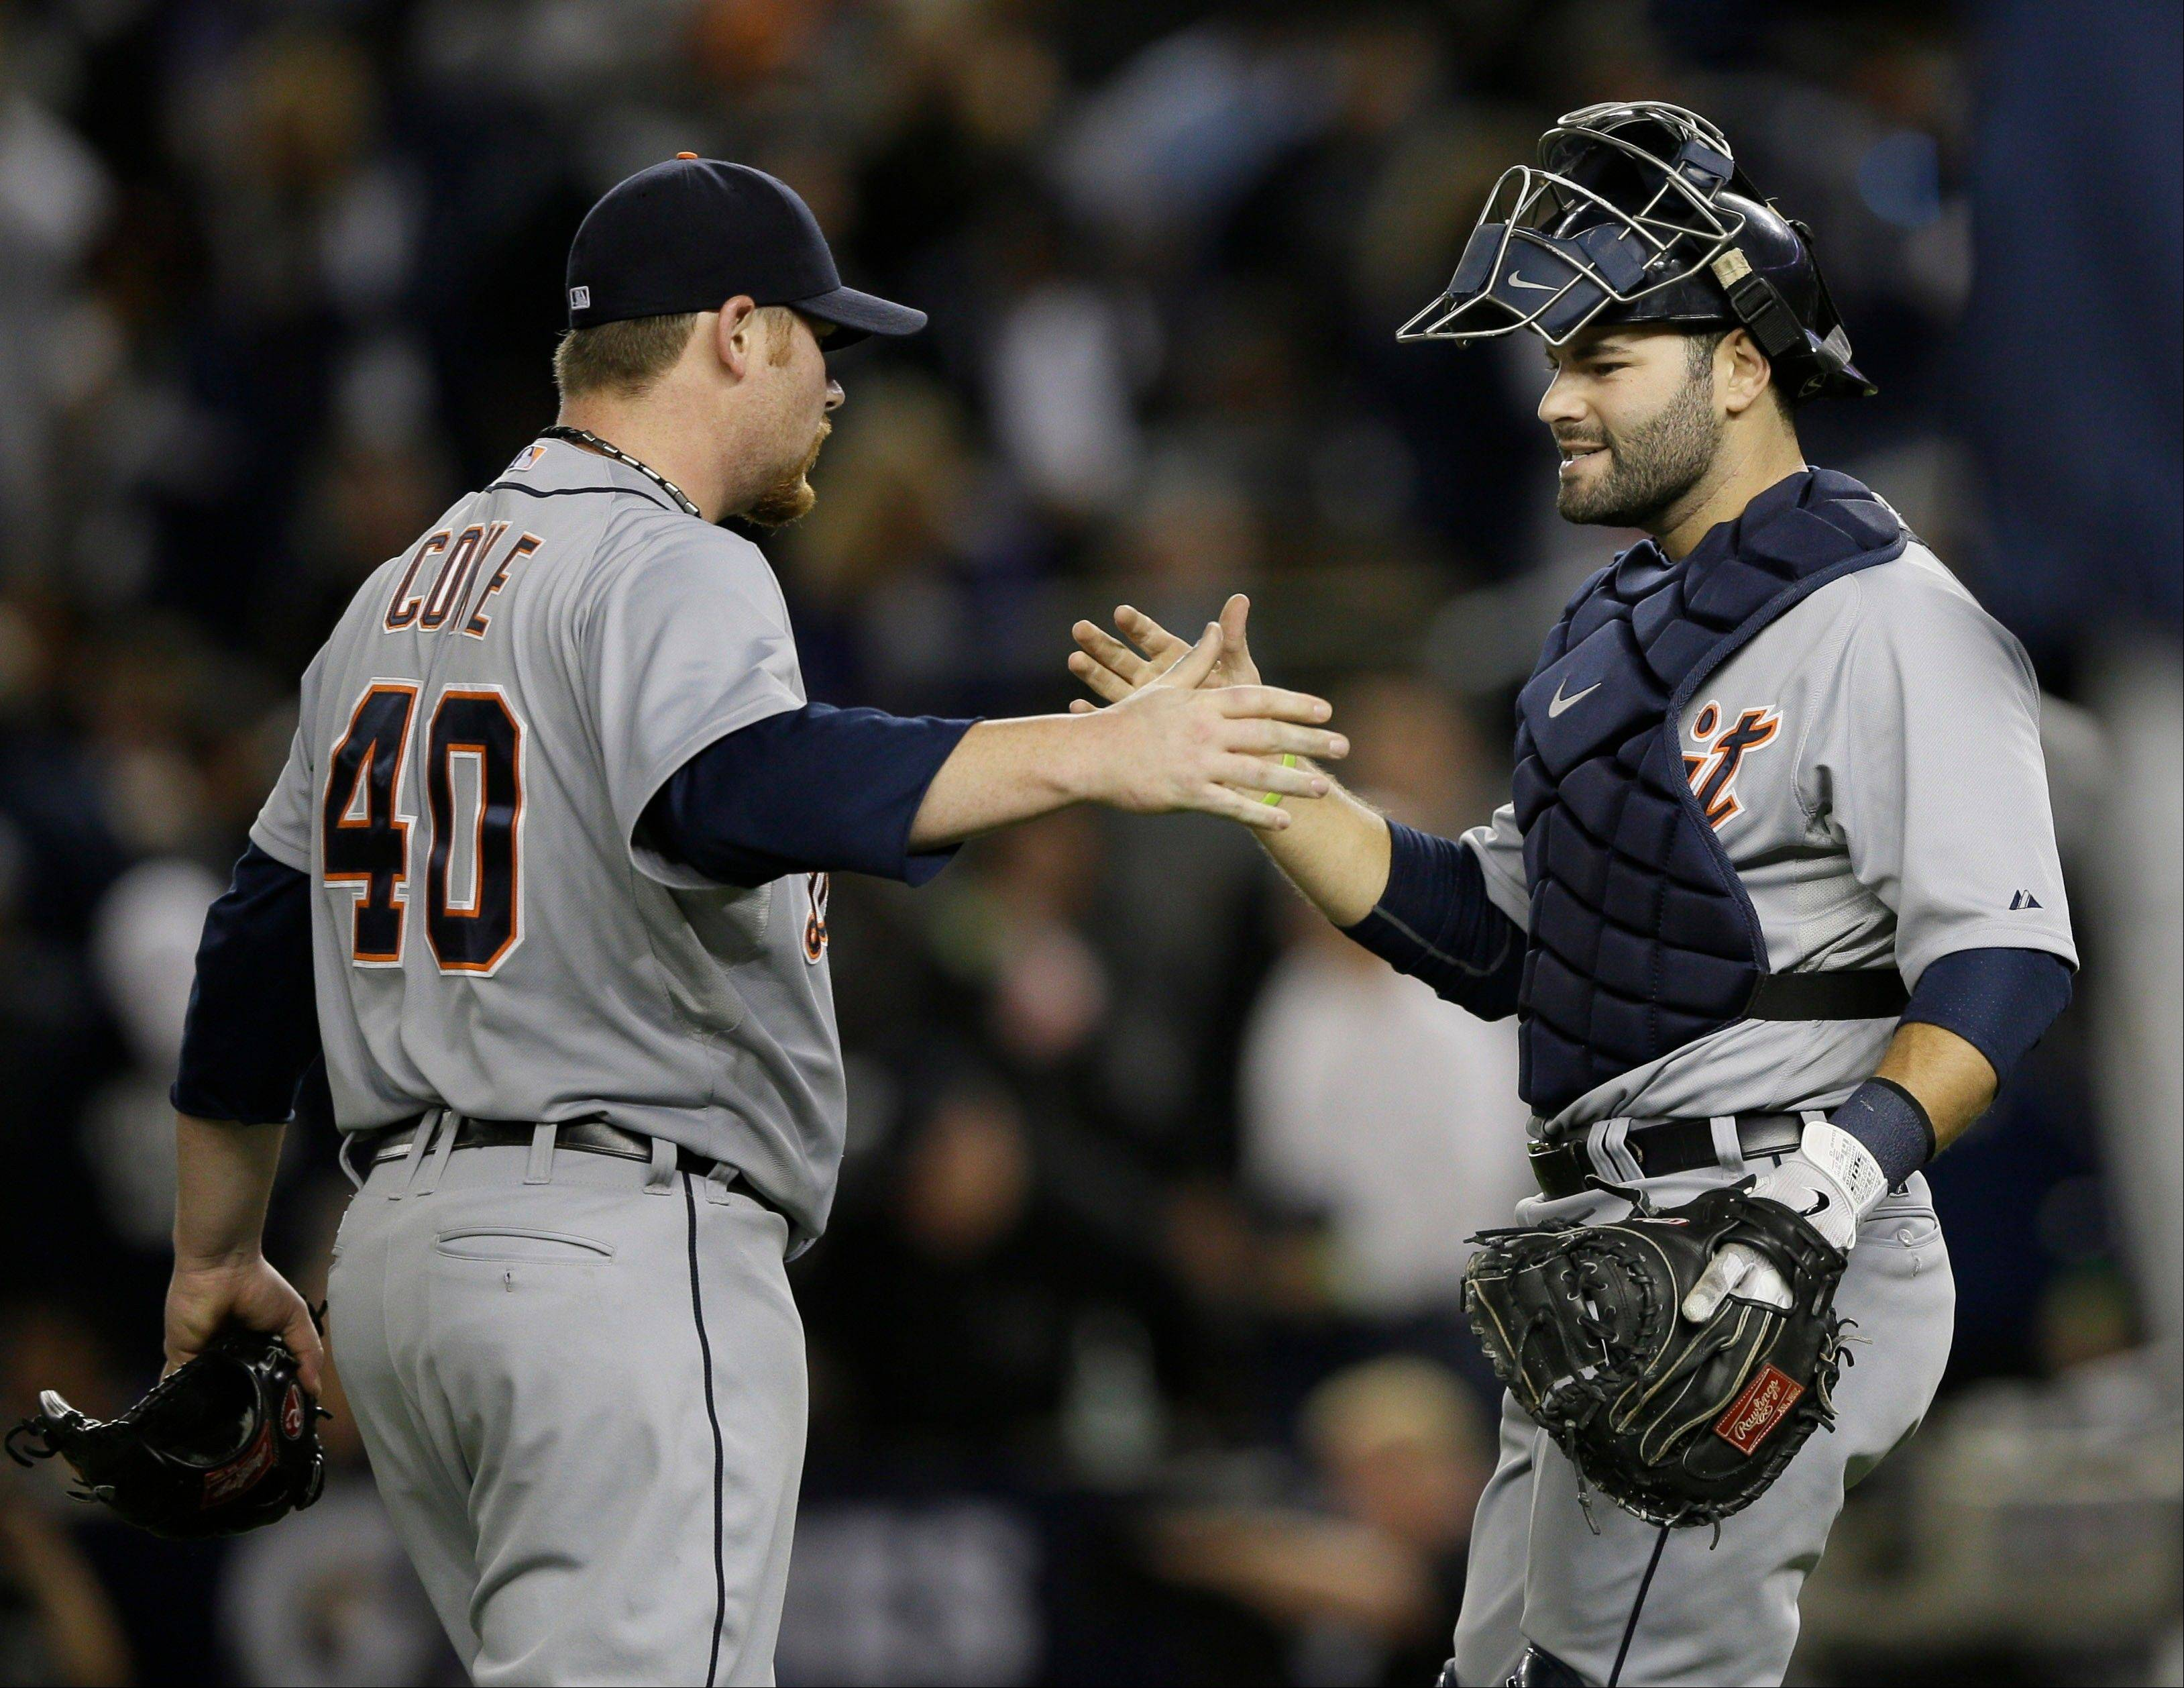 Detroit Tigers' Phil Coke, left, and Alex Avila celebrate after beating the New York Yankees 3-0 in Game 2 of the American League championship series Sunday in New York.